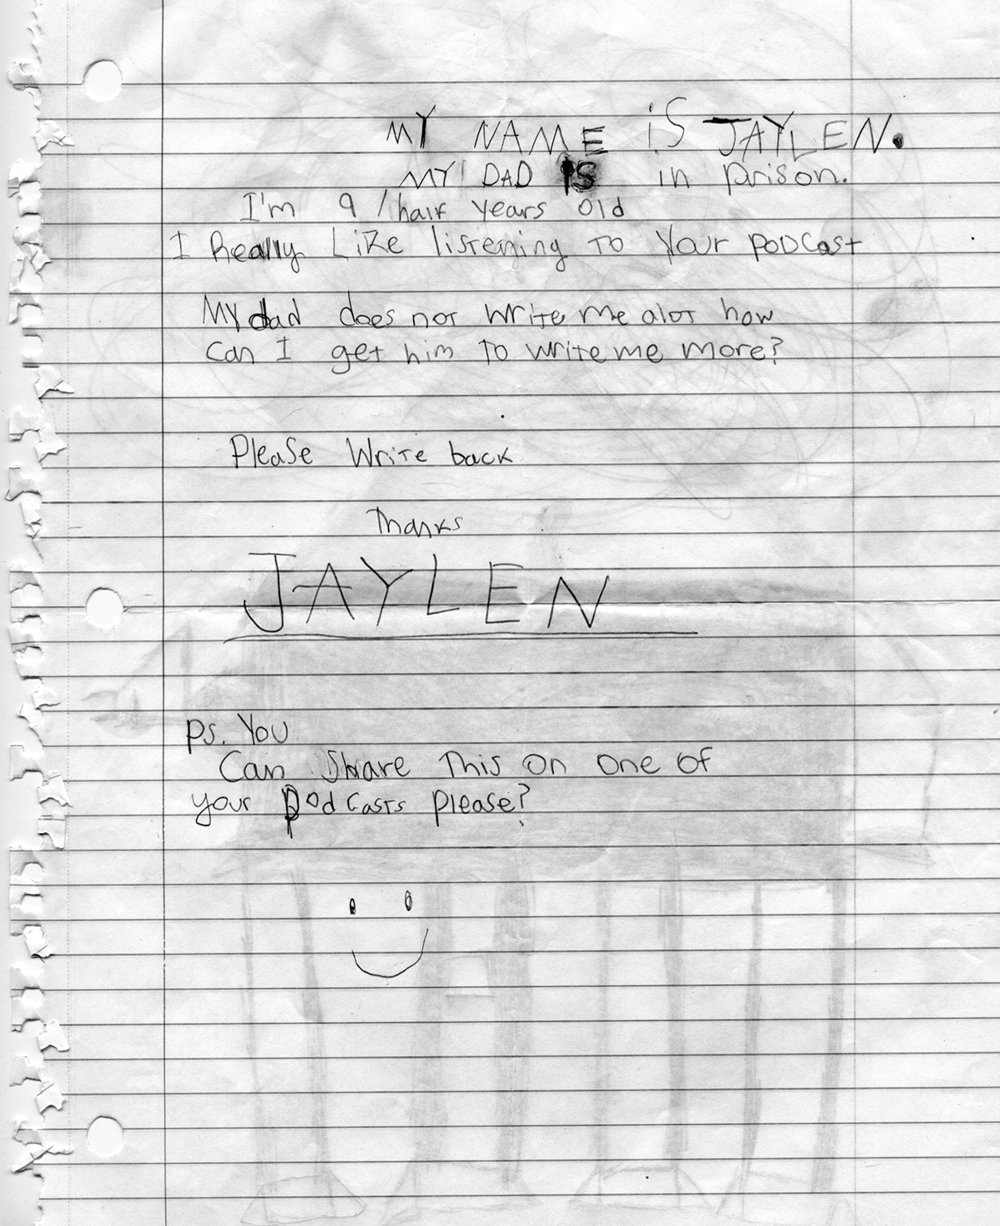 Letter from Jaylen (read at the end of the  Thick Glass  episode)